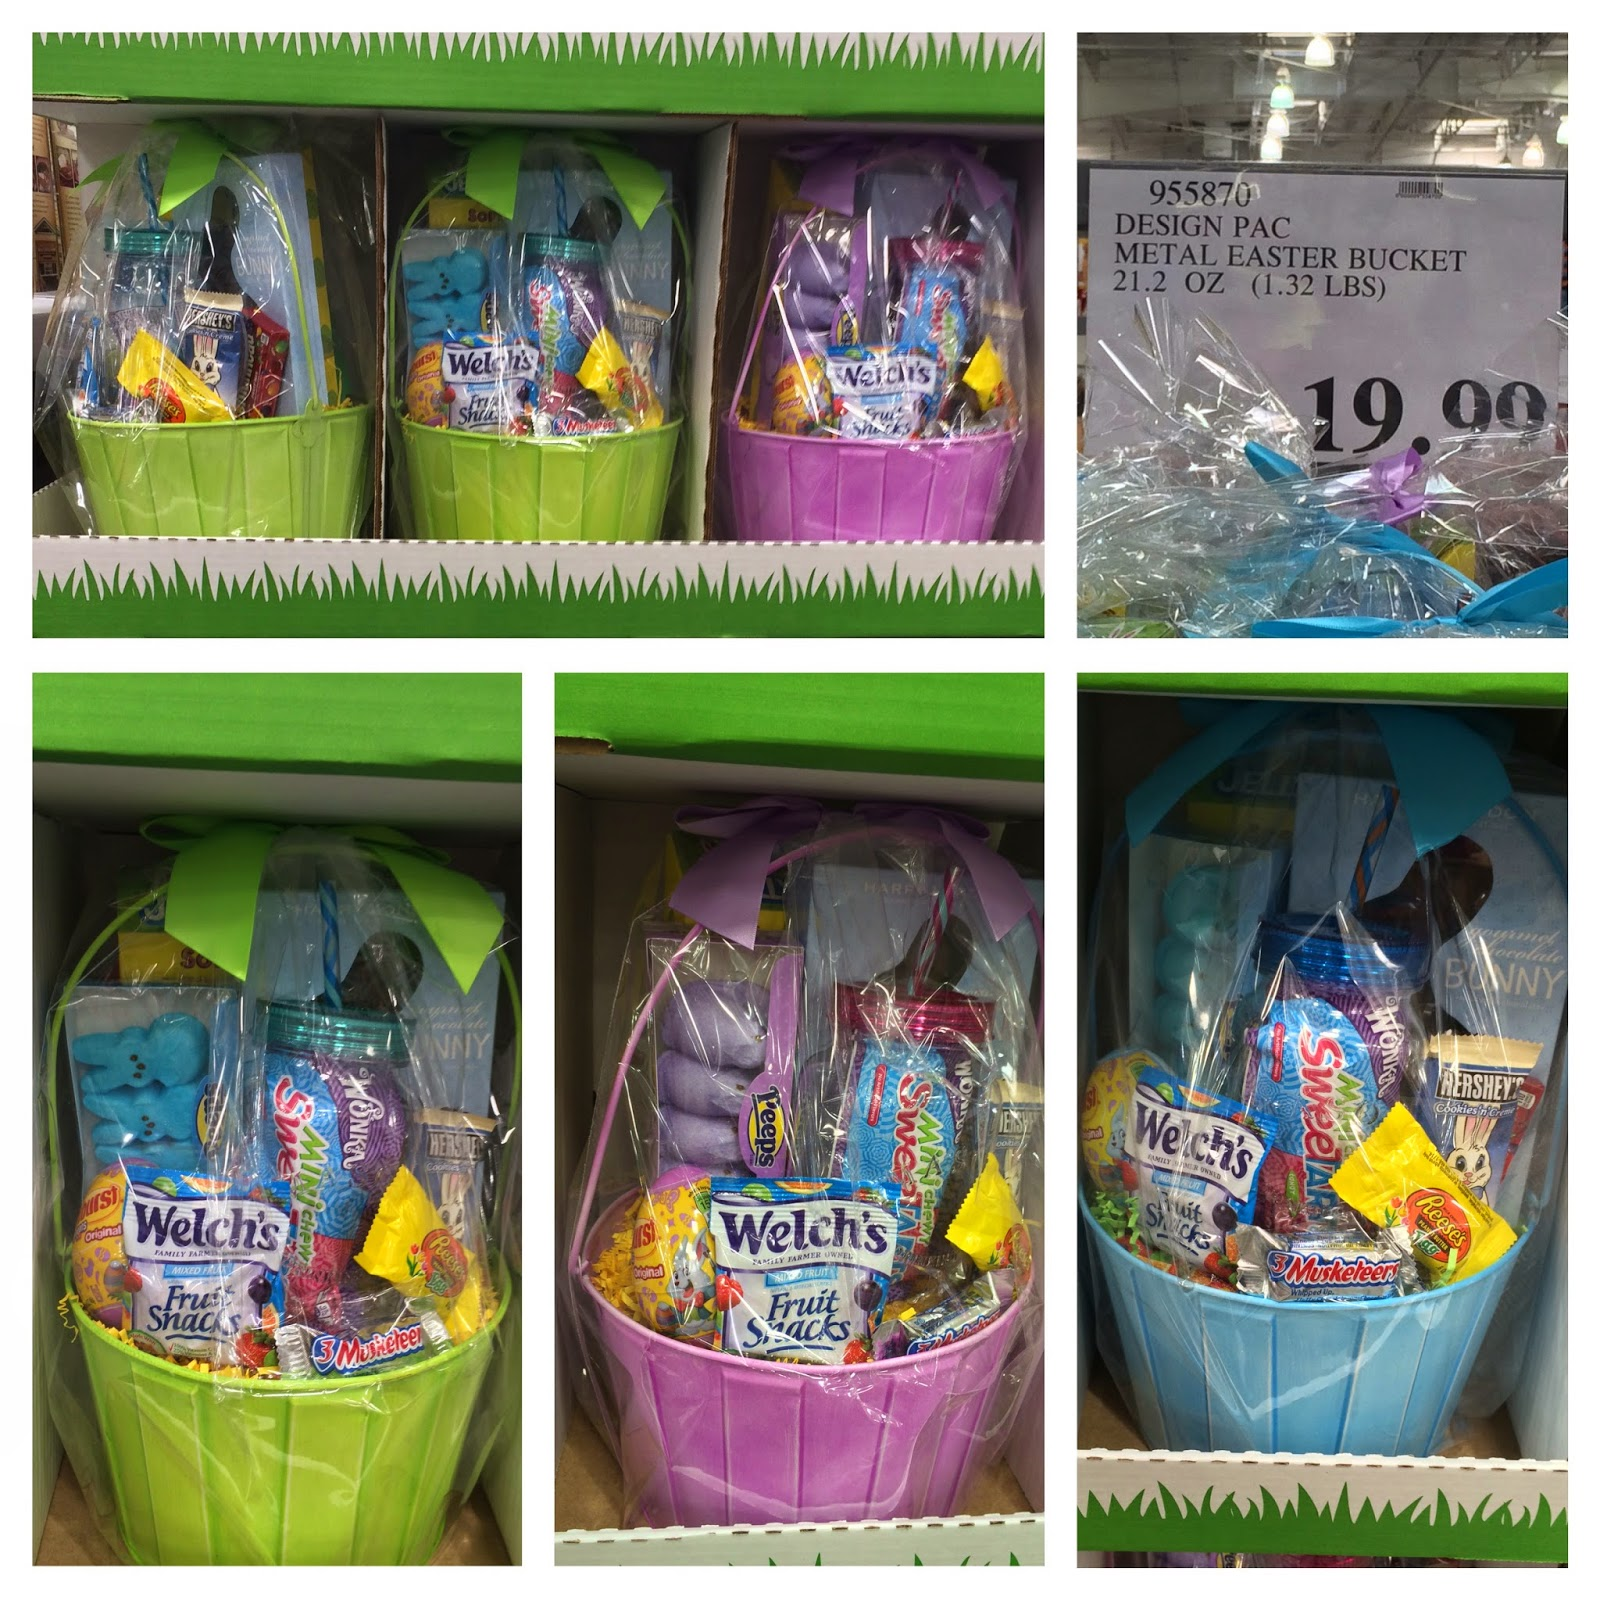 The costco connoisseur celebrate easter with costco the costco connoisseur negle Image collections